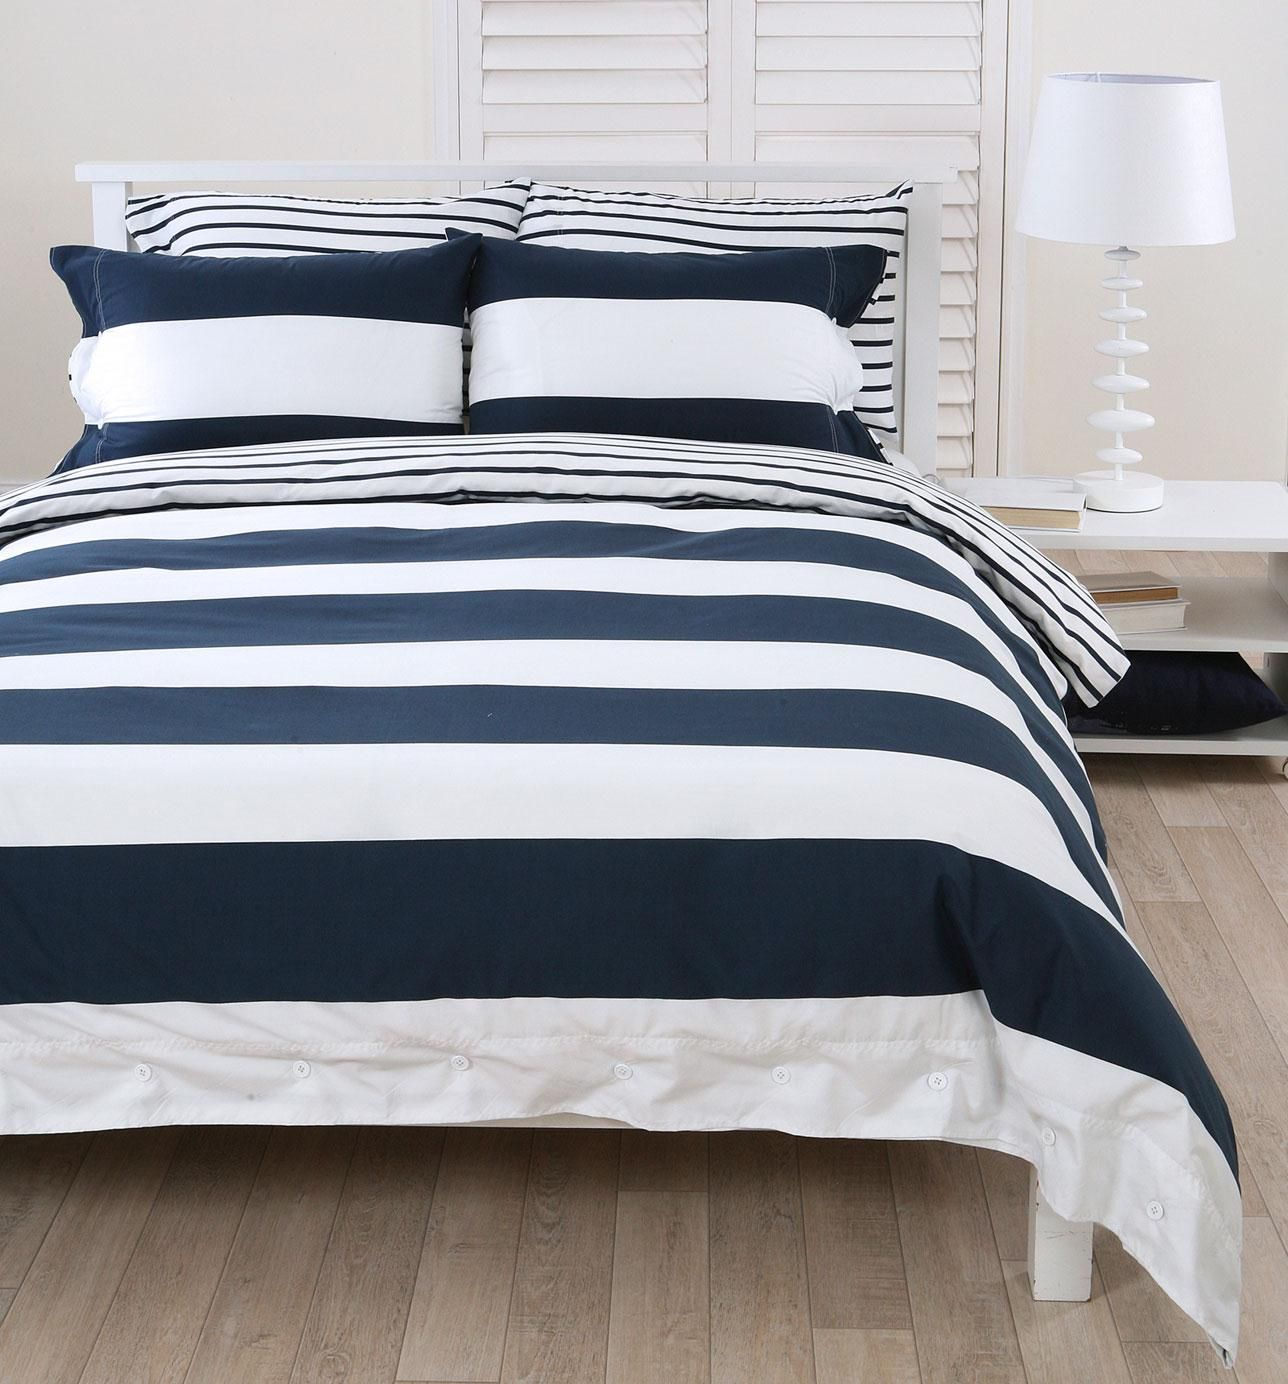 Navy Amp White Striped Duvet Cover In Love With Our New